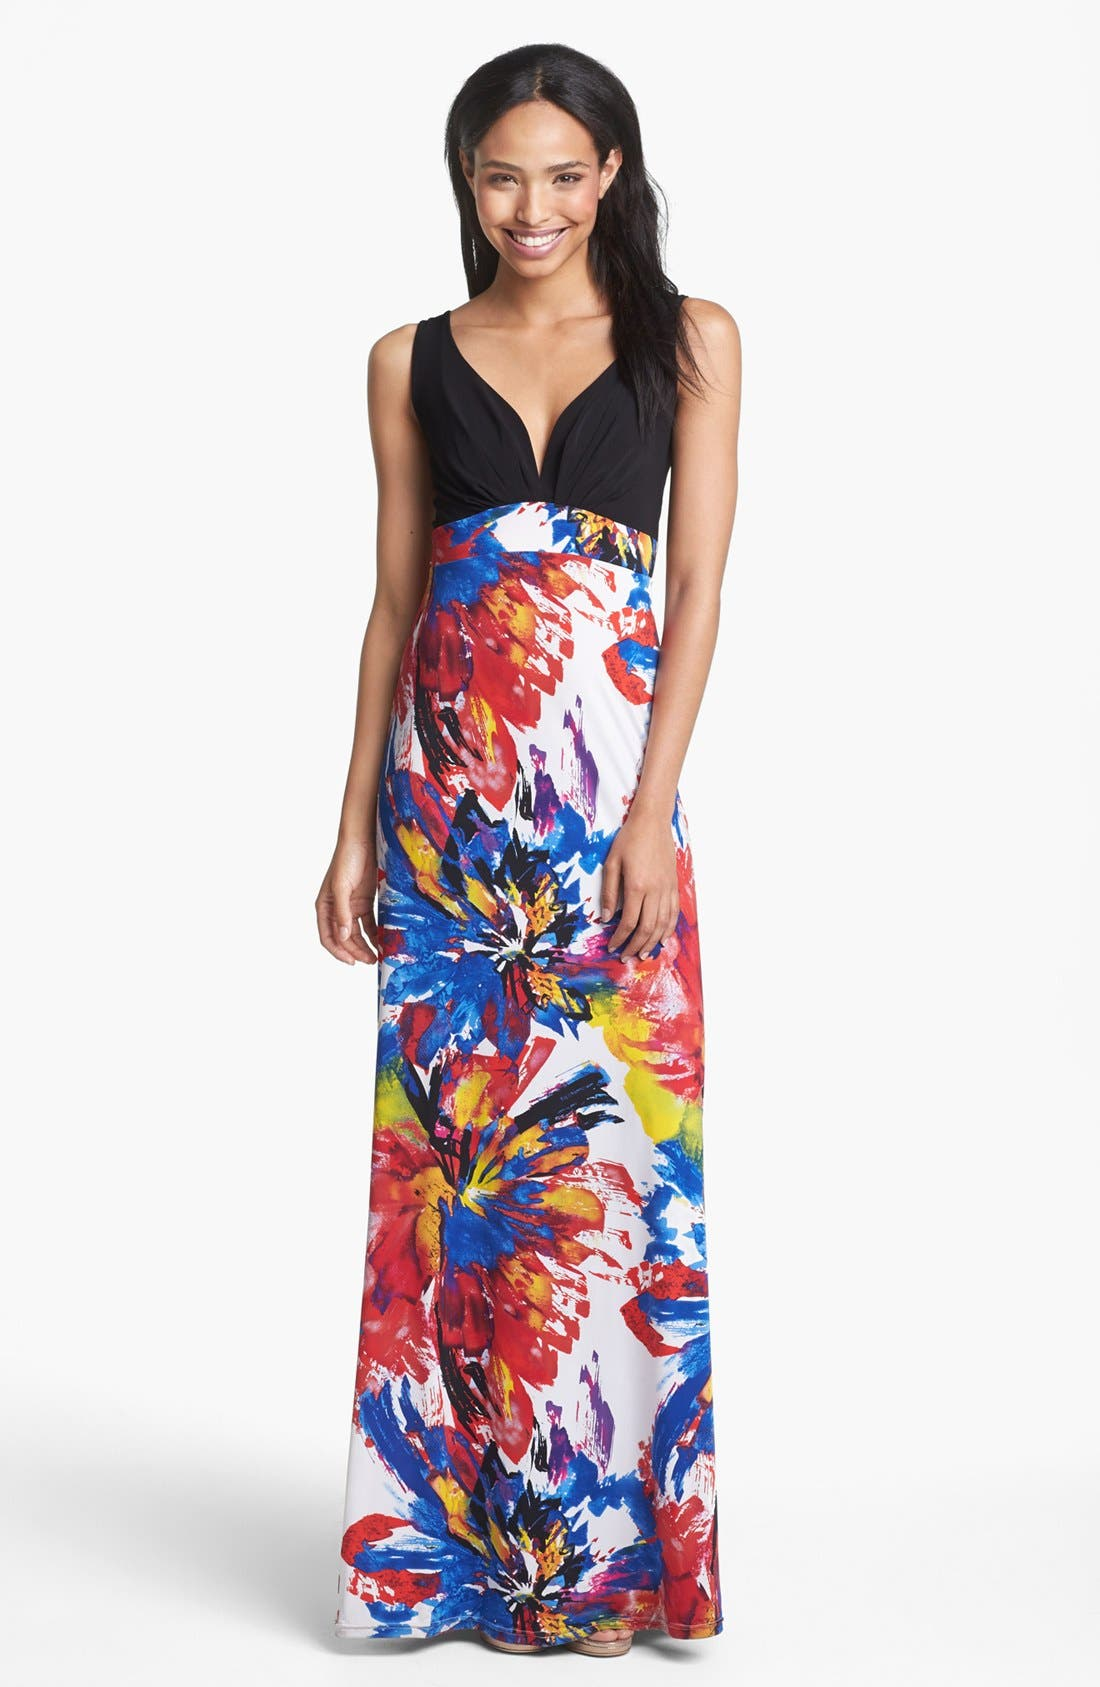 Main Image - Abi Ferrin 'India' Print Sleeveless Maxi Dress